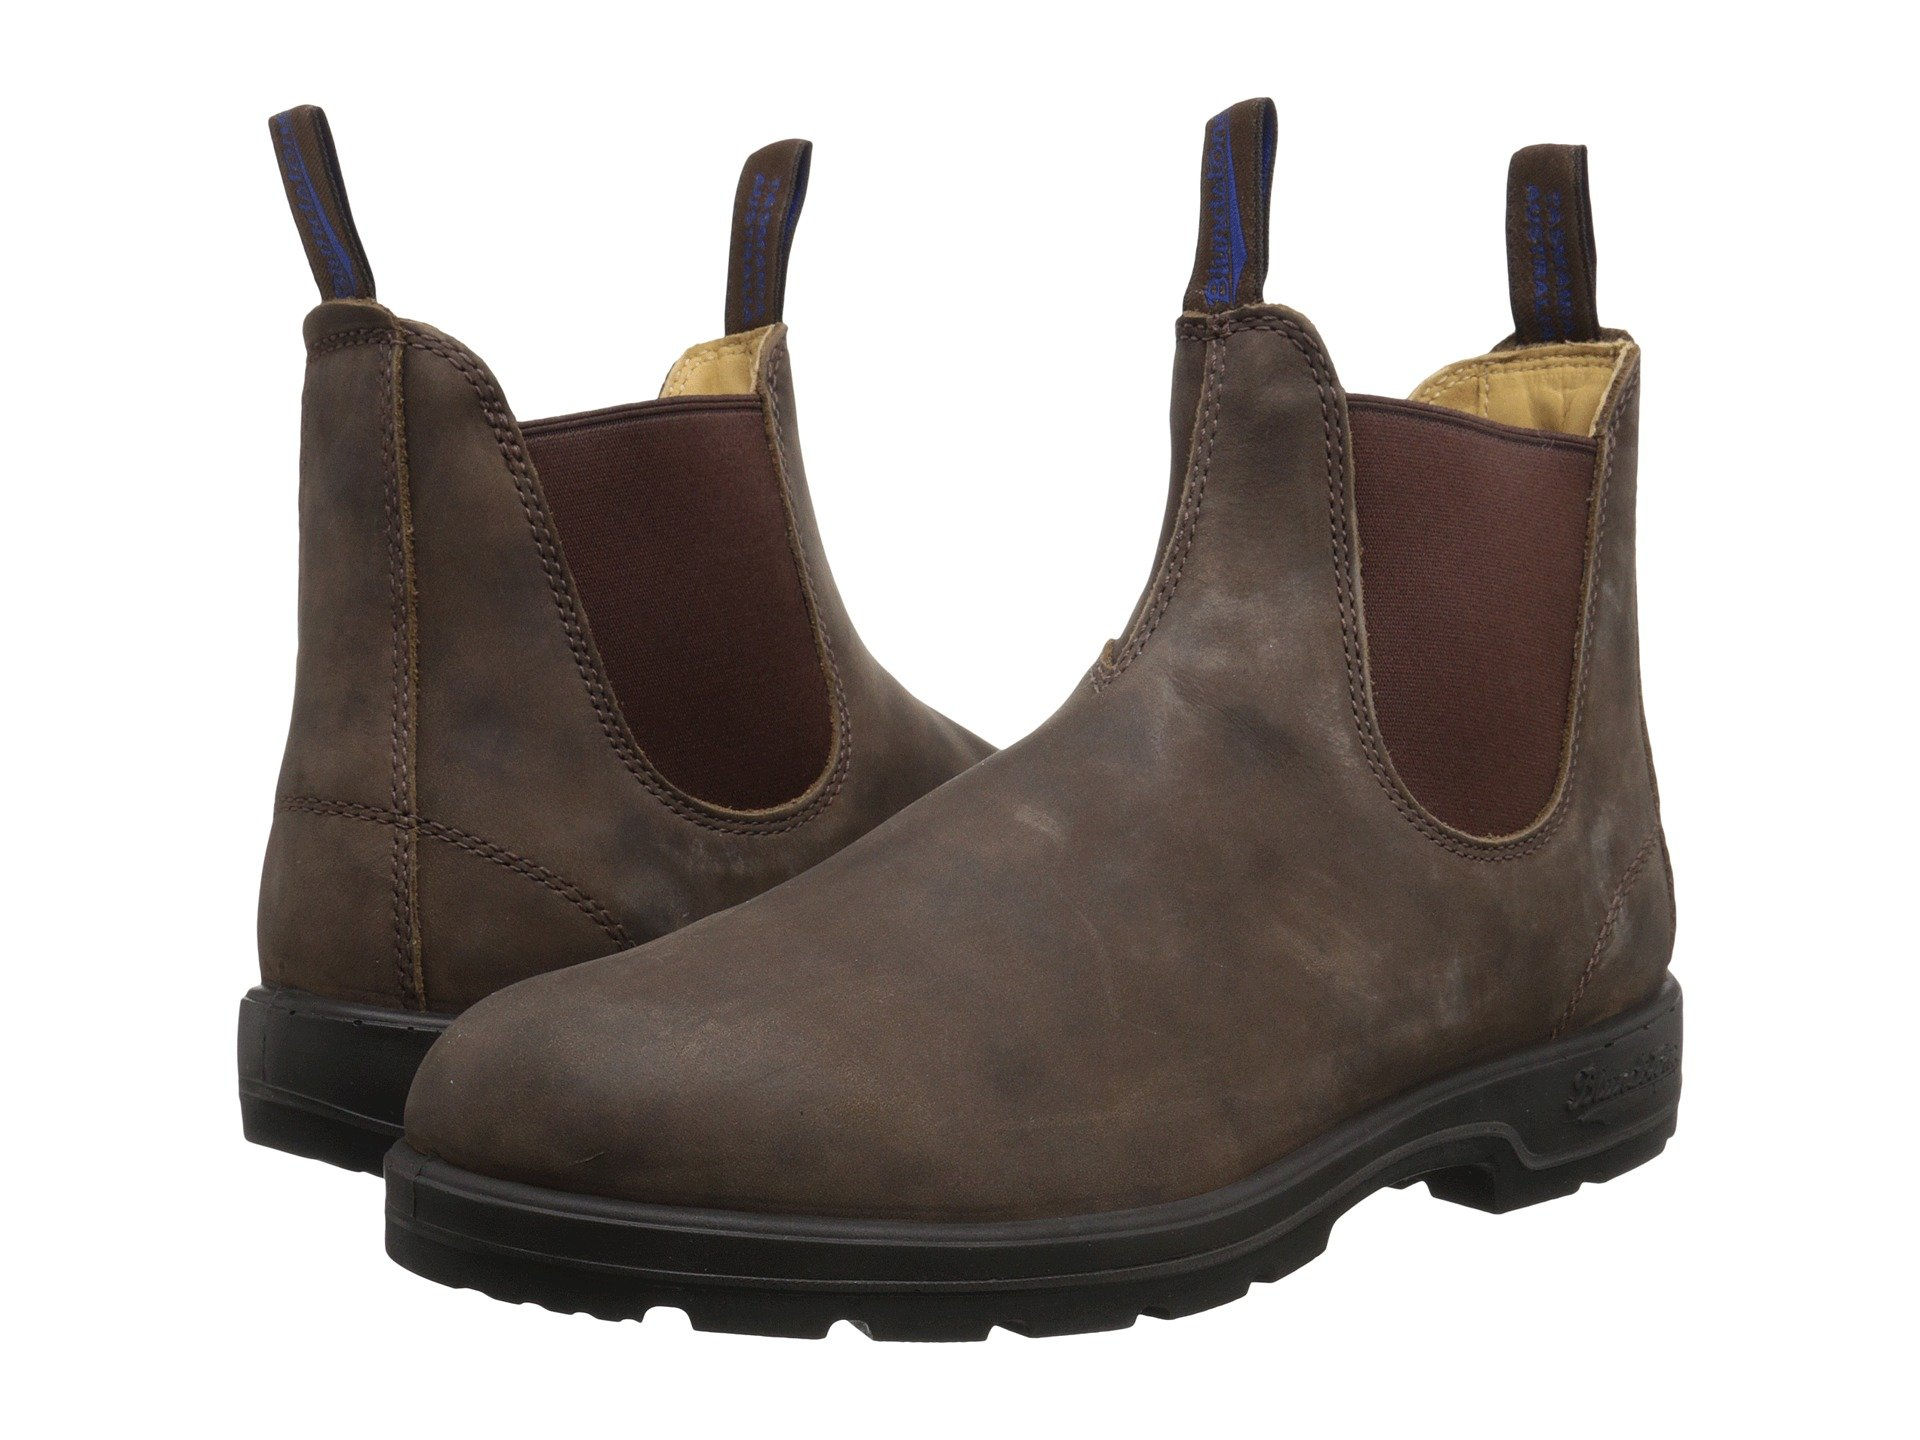 b9b153f62a58 Women s Blundstone Boots + FREE SHIPPING